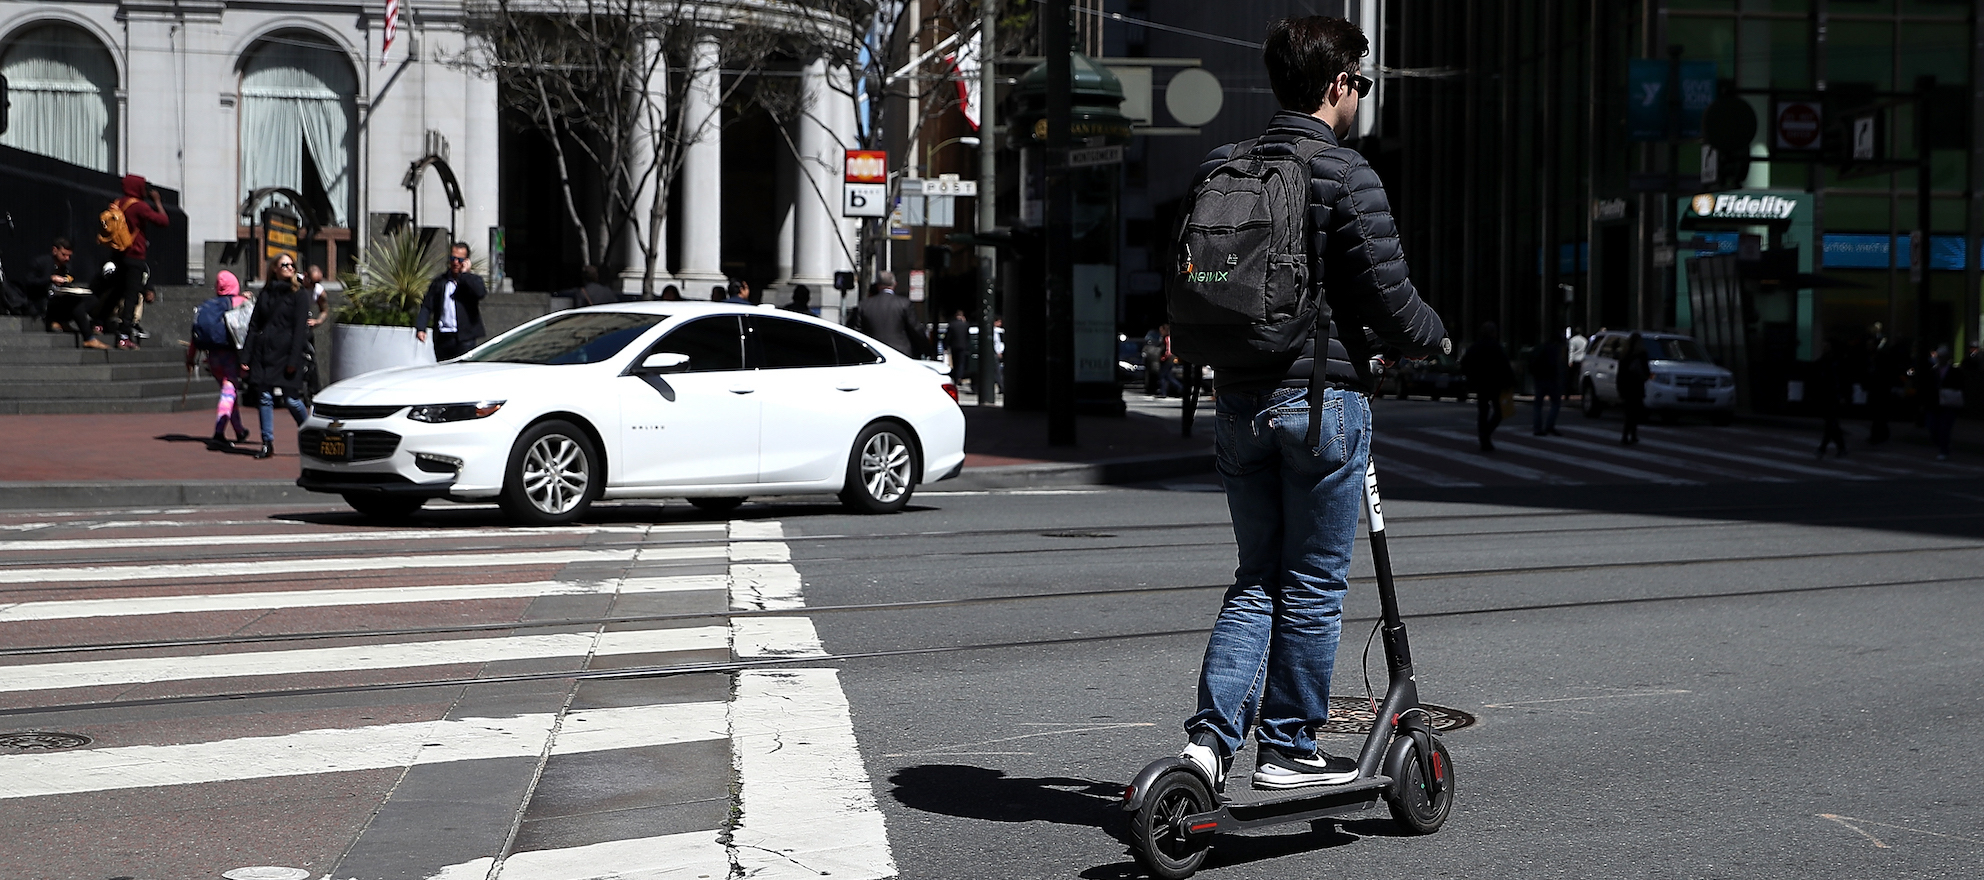 Real estate agents see electric scooter boom as mixed blessing